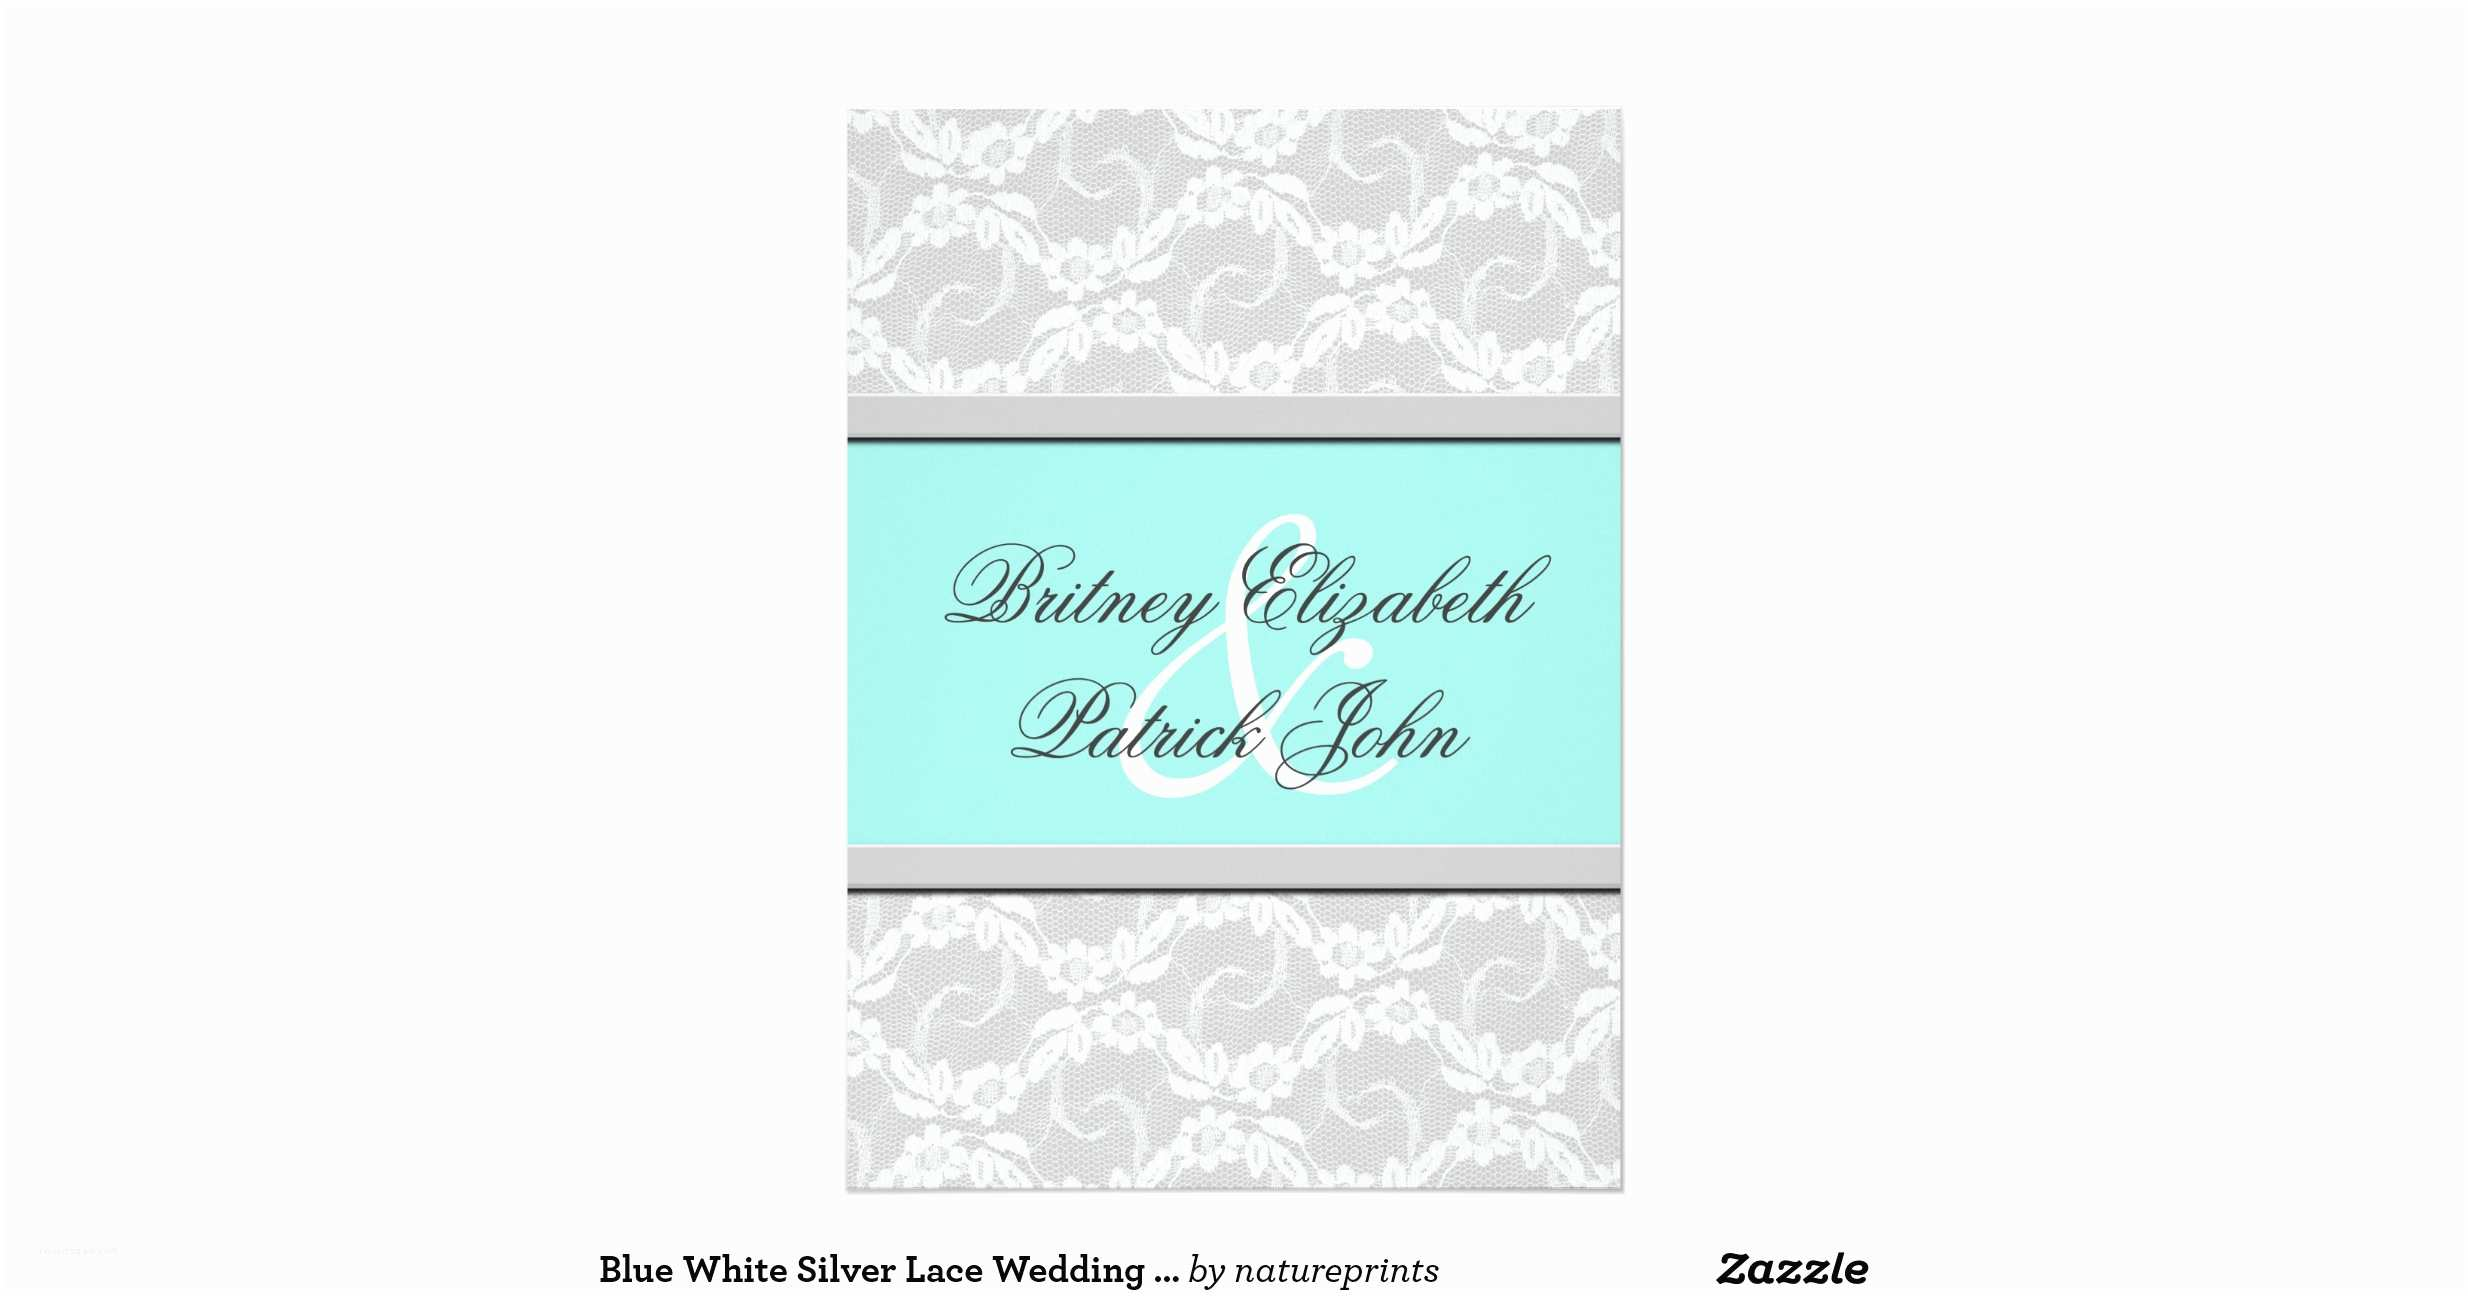 White and Silver Wedding Invitations Blue White Silver Lace Wedding Invitations